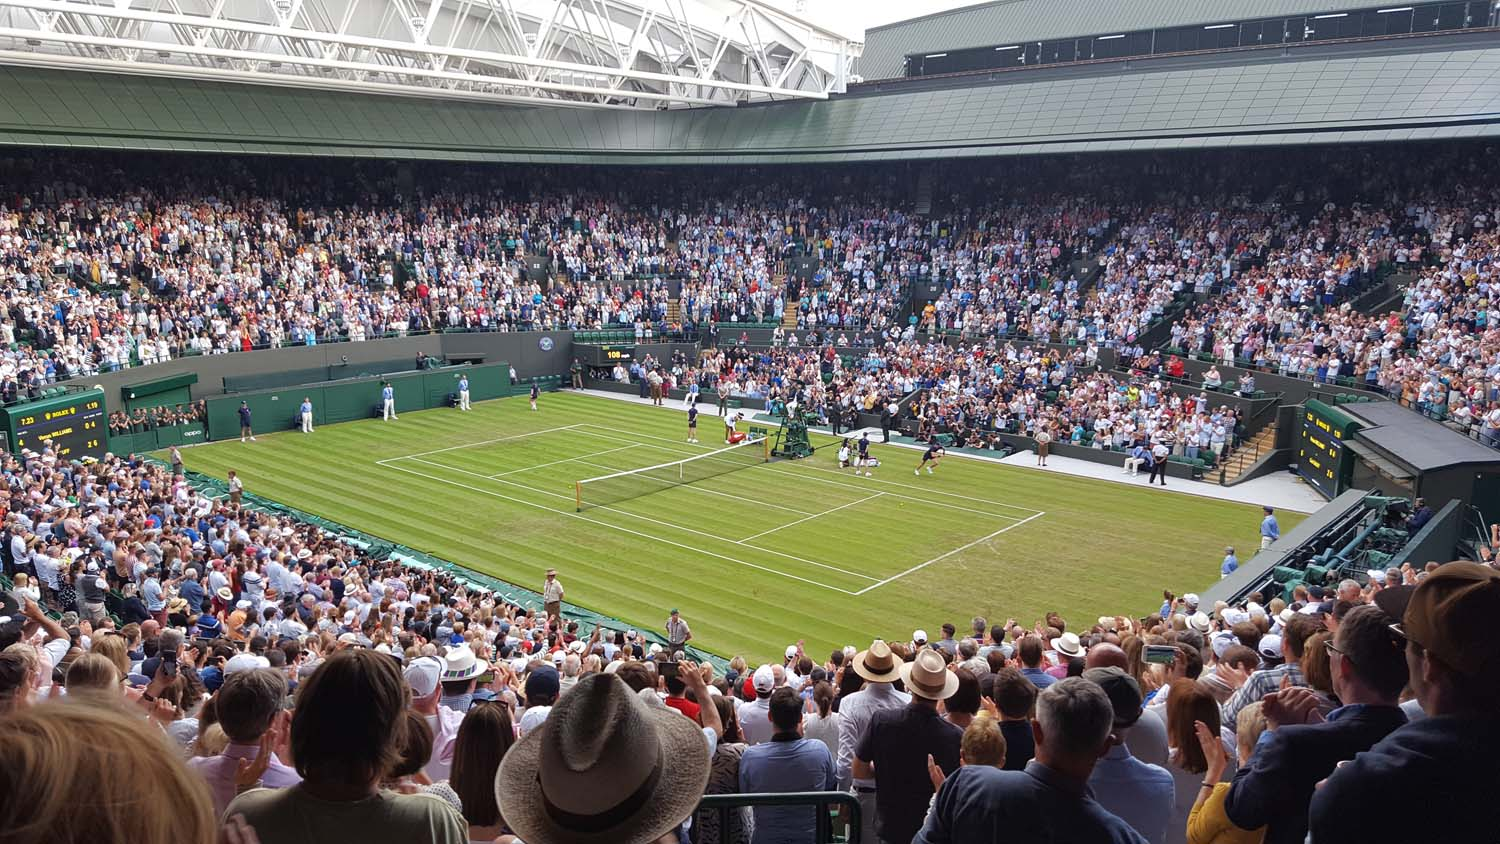 wimbledon no1 court